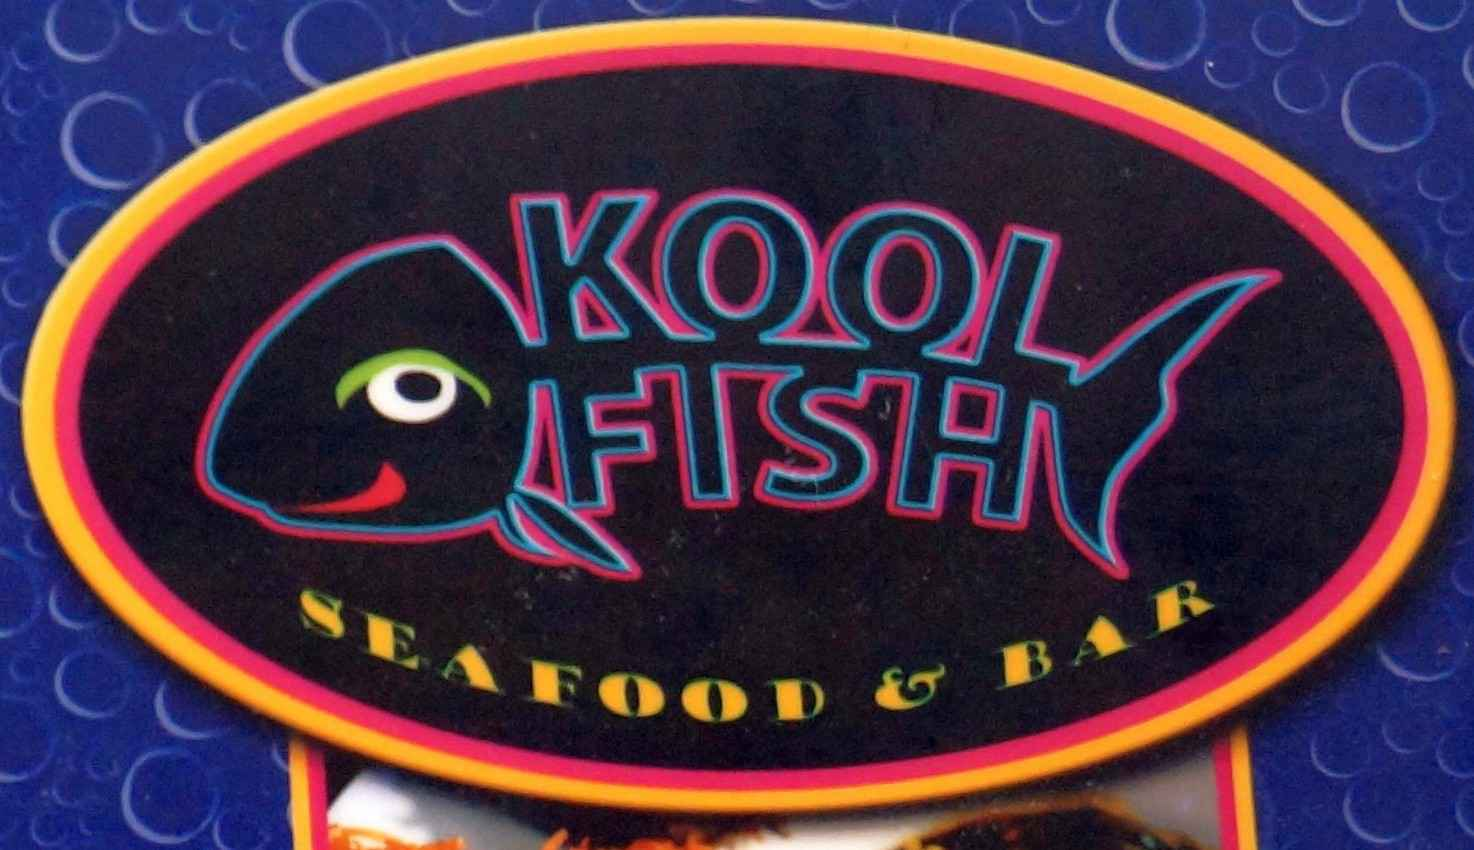 The Kool Fish logo above the door of the restaurant.